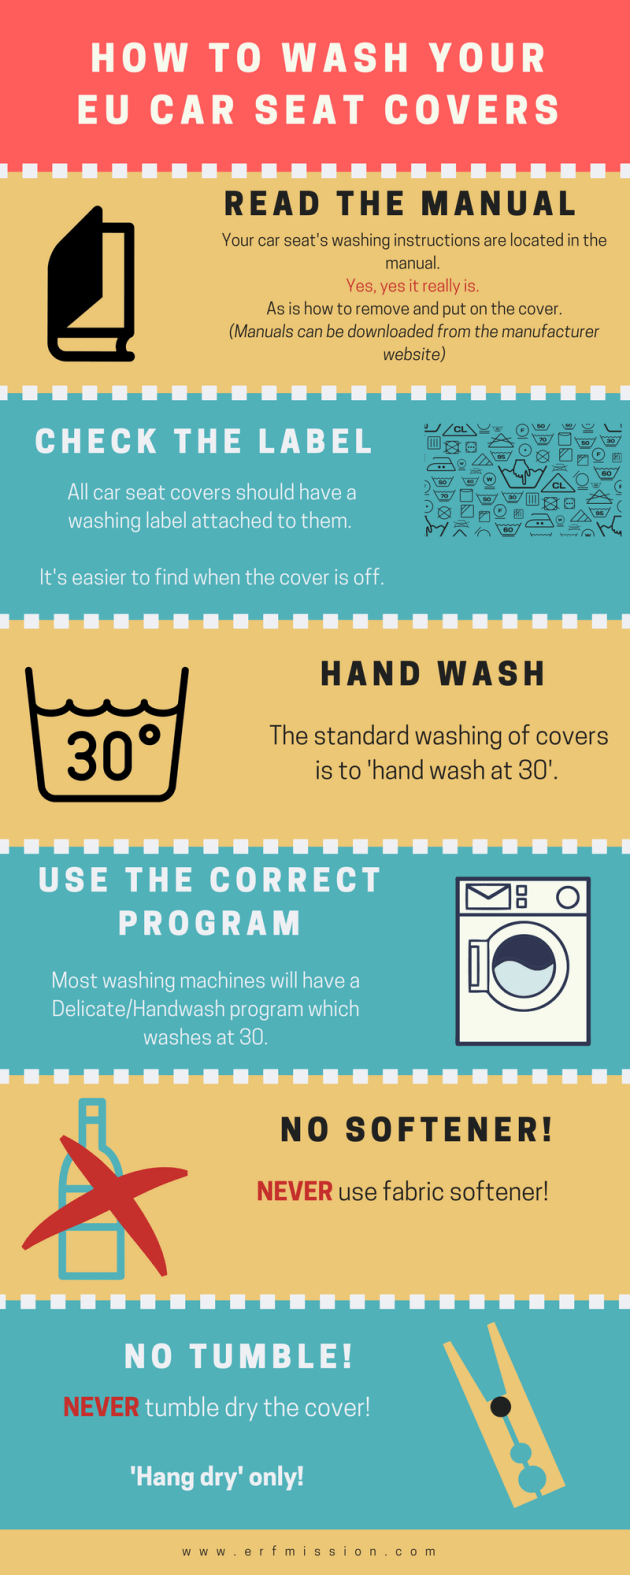 How to wash EU CaR Seat Covers INFOGRAPHIC